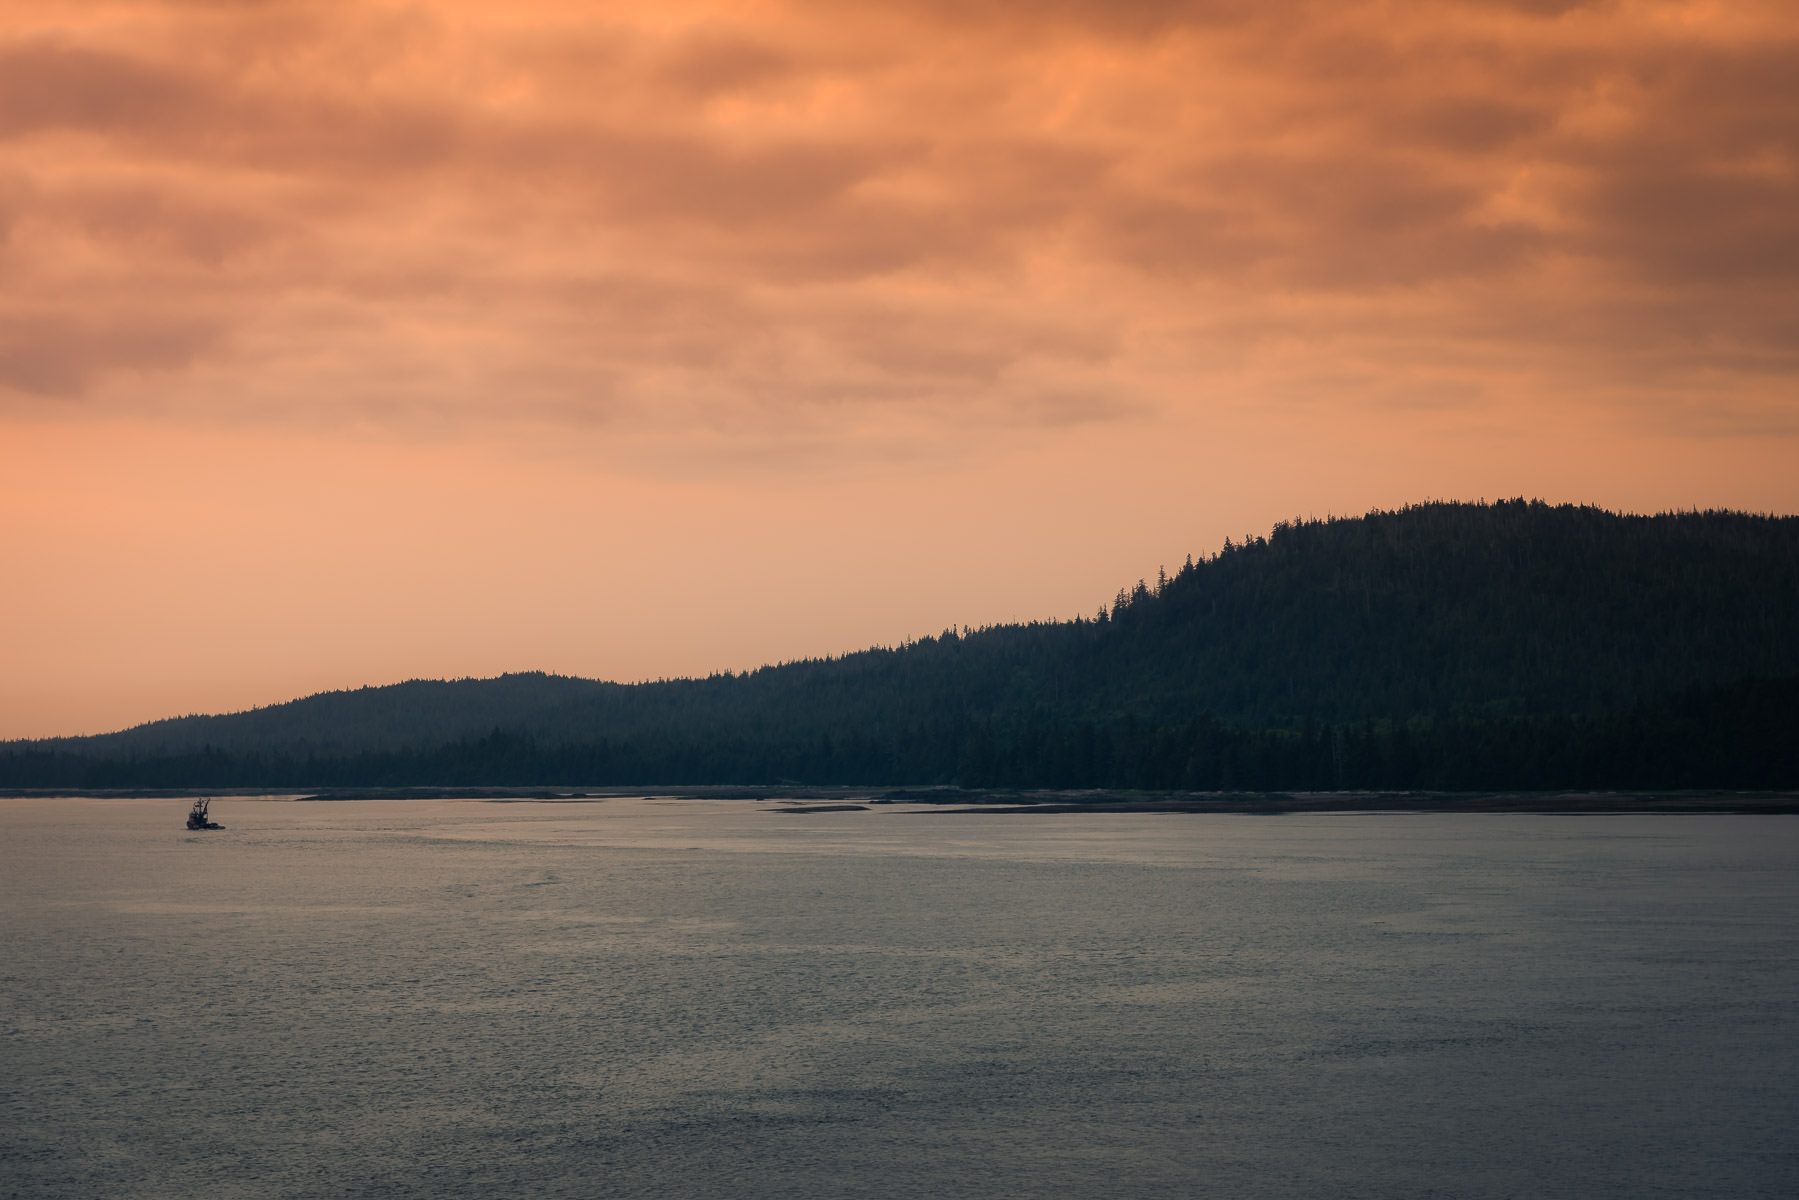 A fishing boat sails the Tongass Narrows as the sun sets on Ketchikan, Alaska.